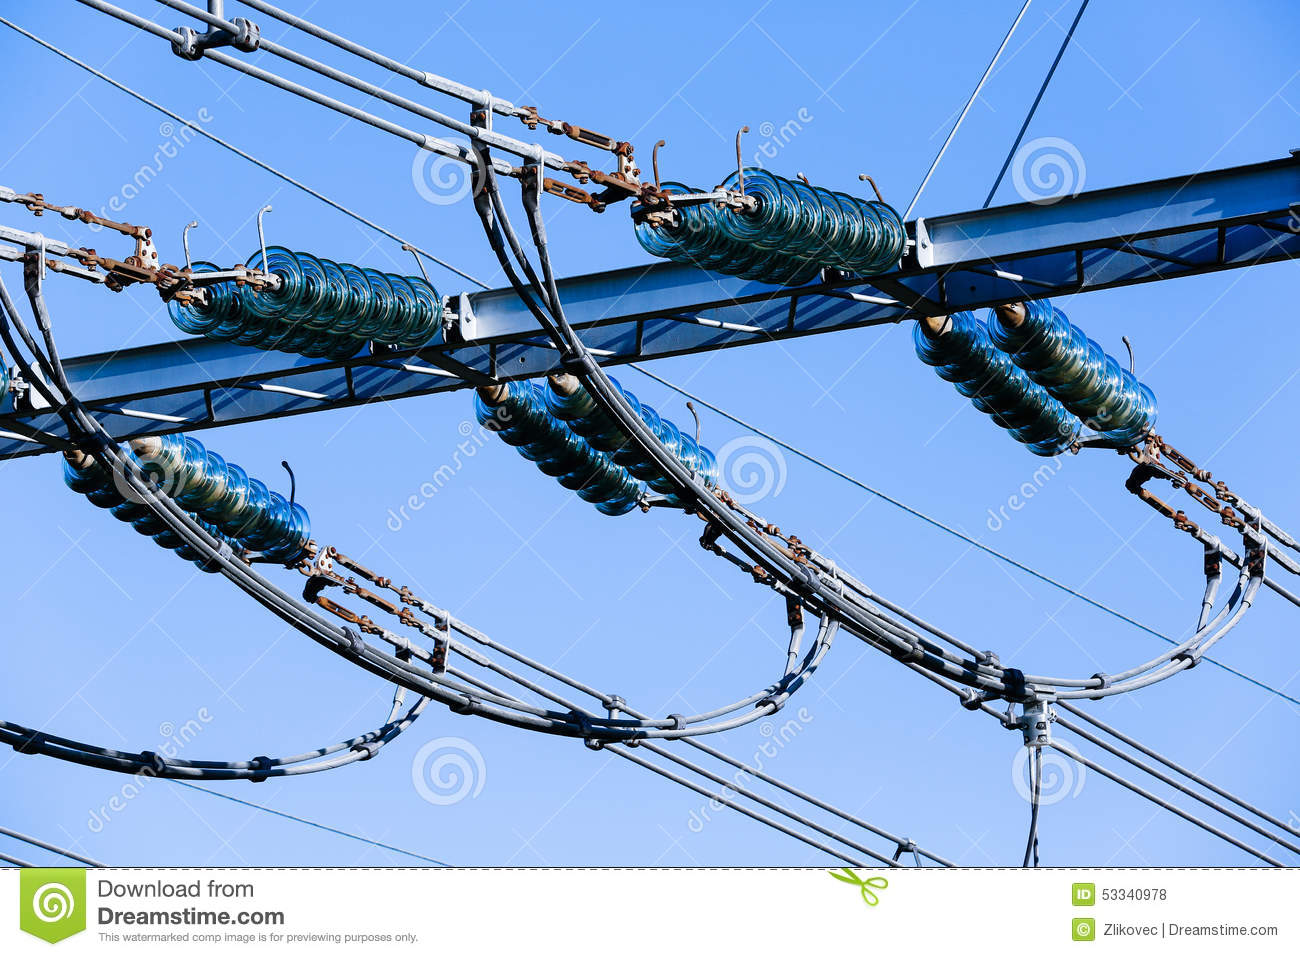 Old Style Electrical Wiring And Insulators Against A Blue Sky ... on